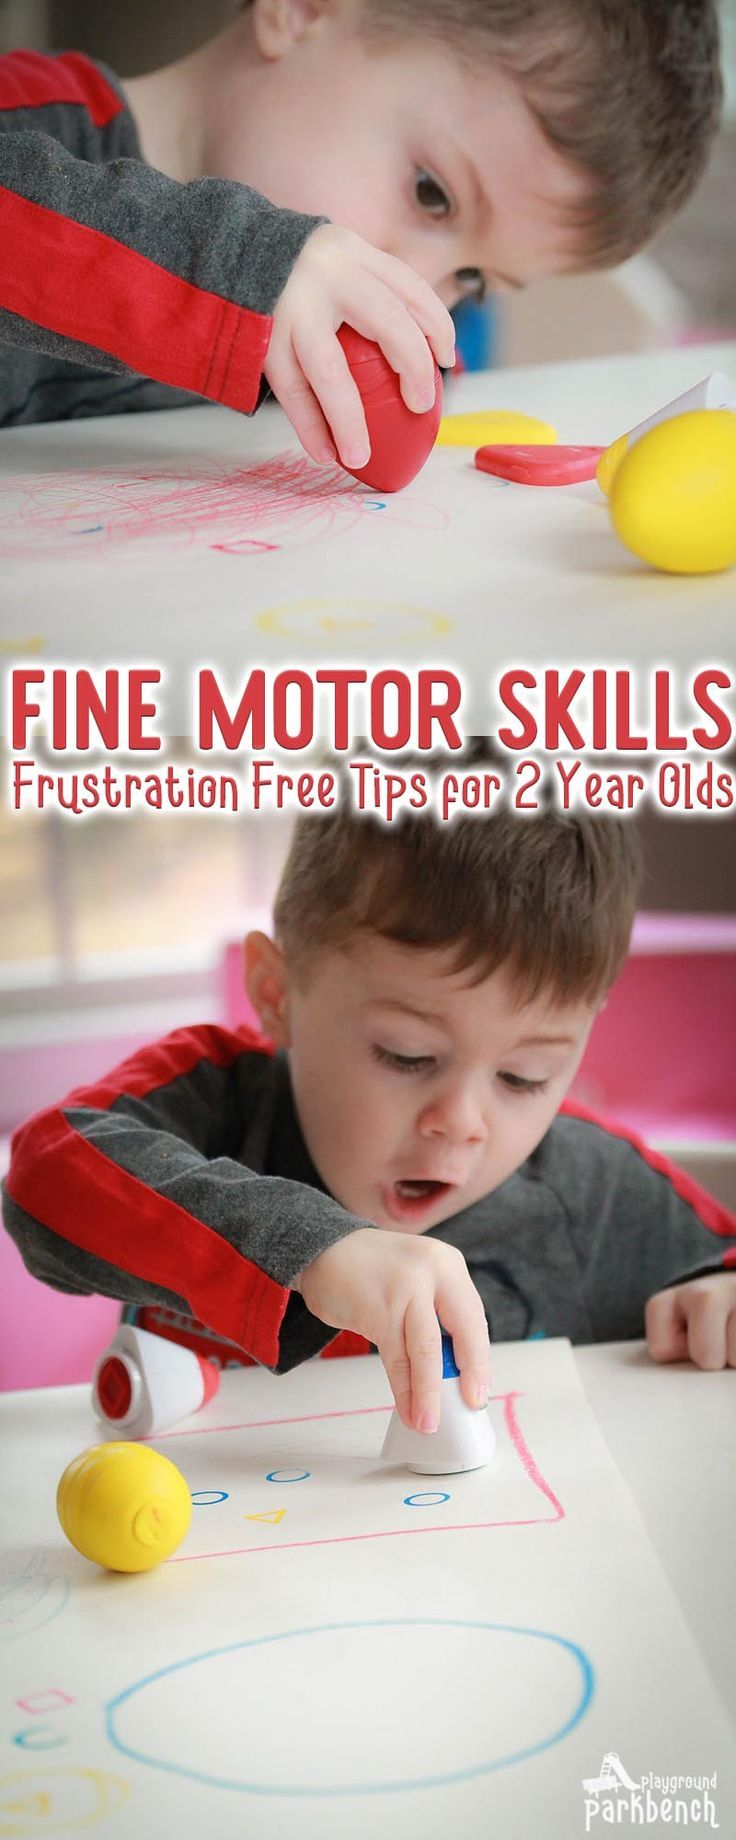 Quick and Easy Fine Motor Activities for 2 Year Olds | Fine Motor Skills |  Pinterest | Motor skills and Activities